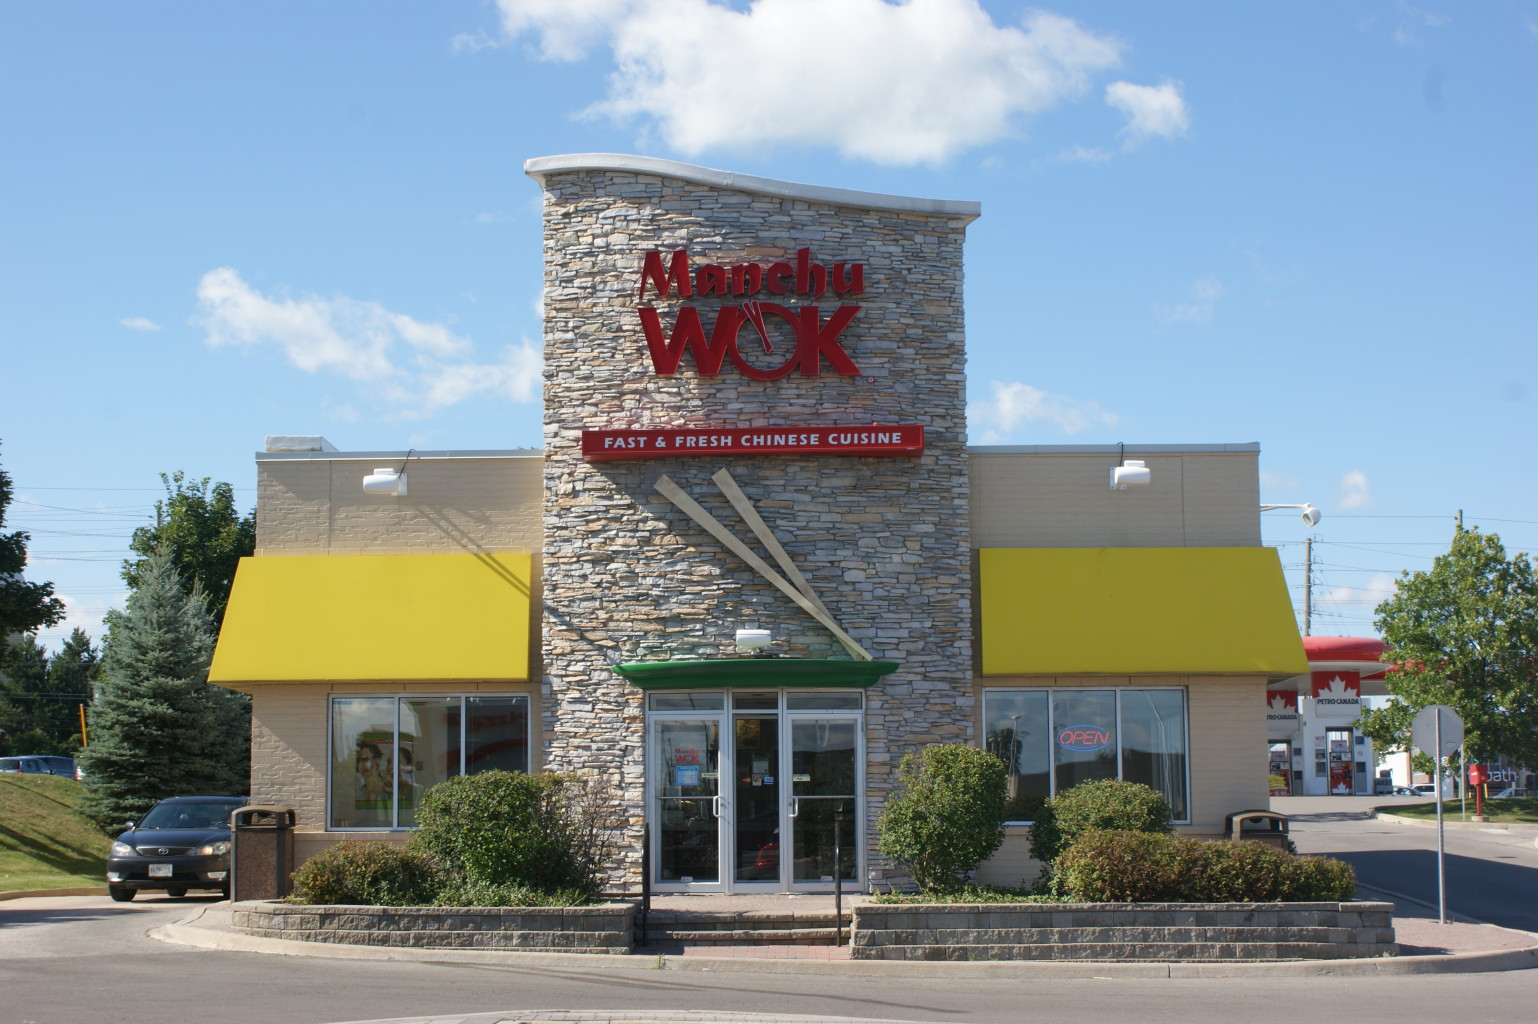 Restaurant Review: Manchu Wok – Meeting a New Need